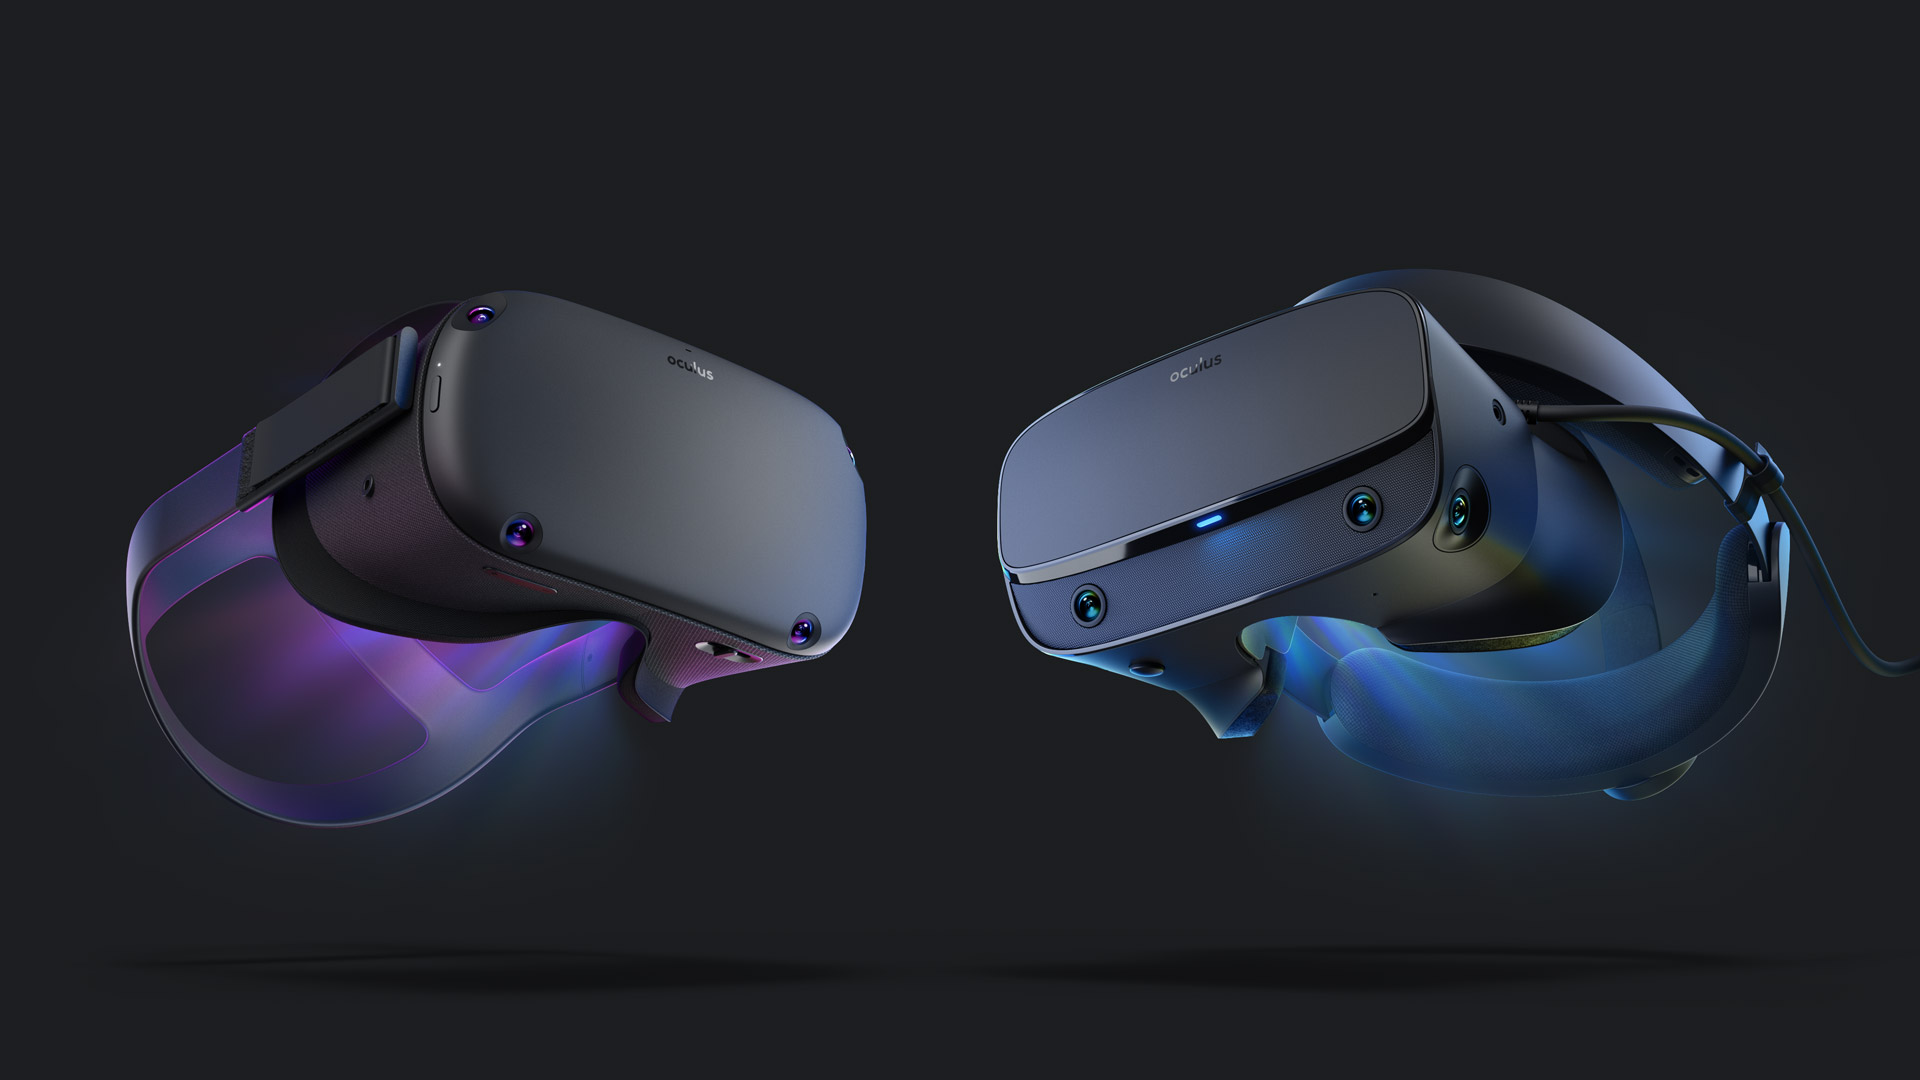 6d14e9811ea Oculus Rift S vs. Oculus Quest – What s the Difference